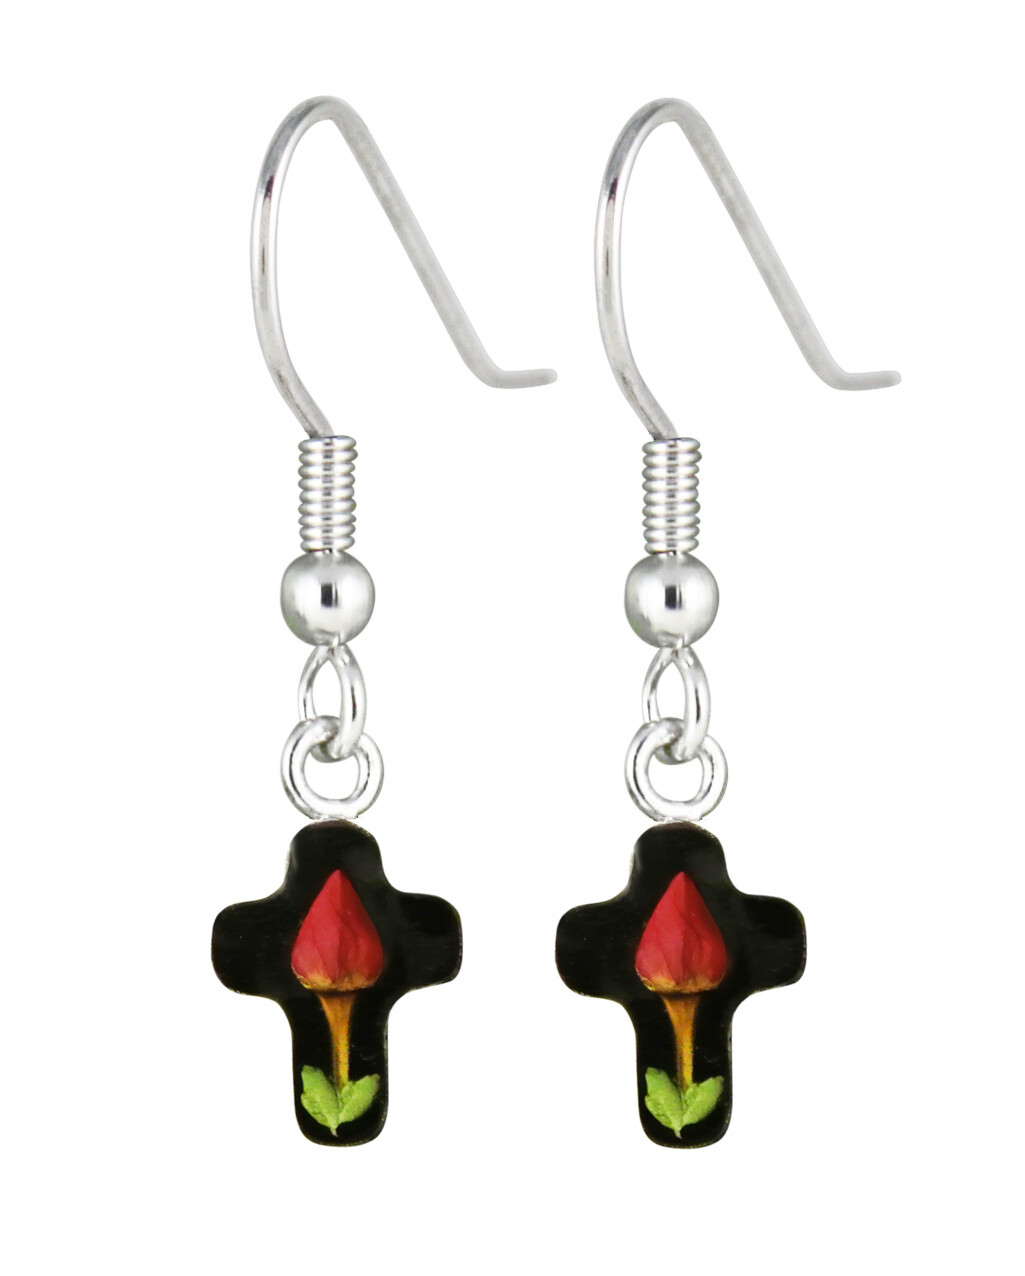 Rose, Small Cross Hanging Earrings, Black Background